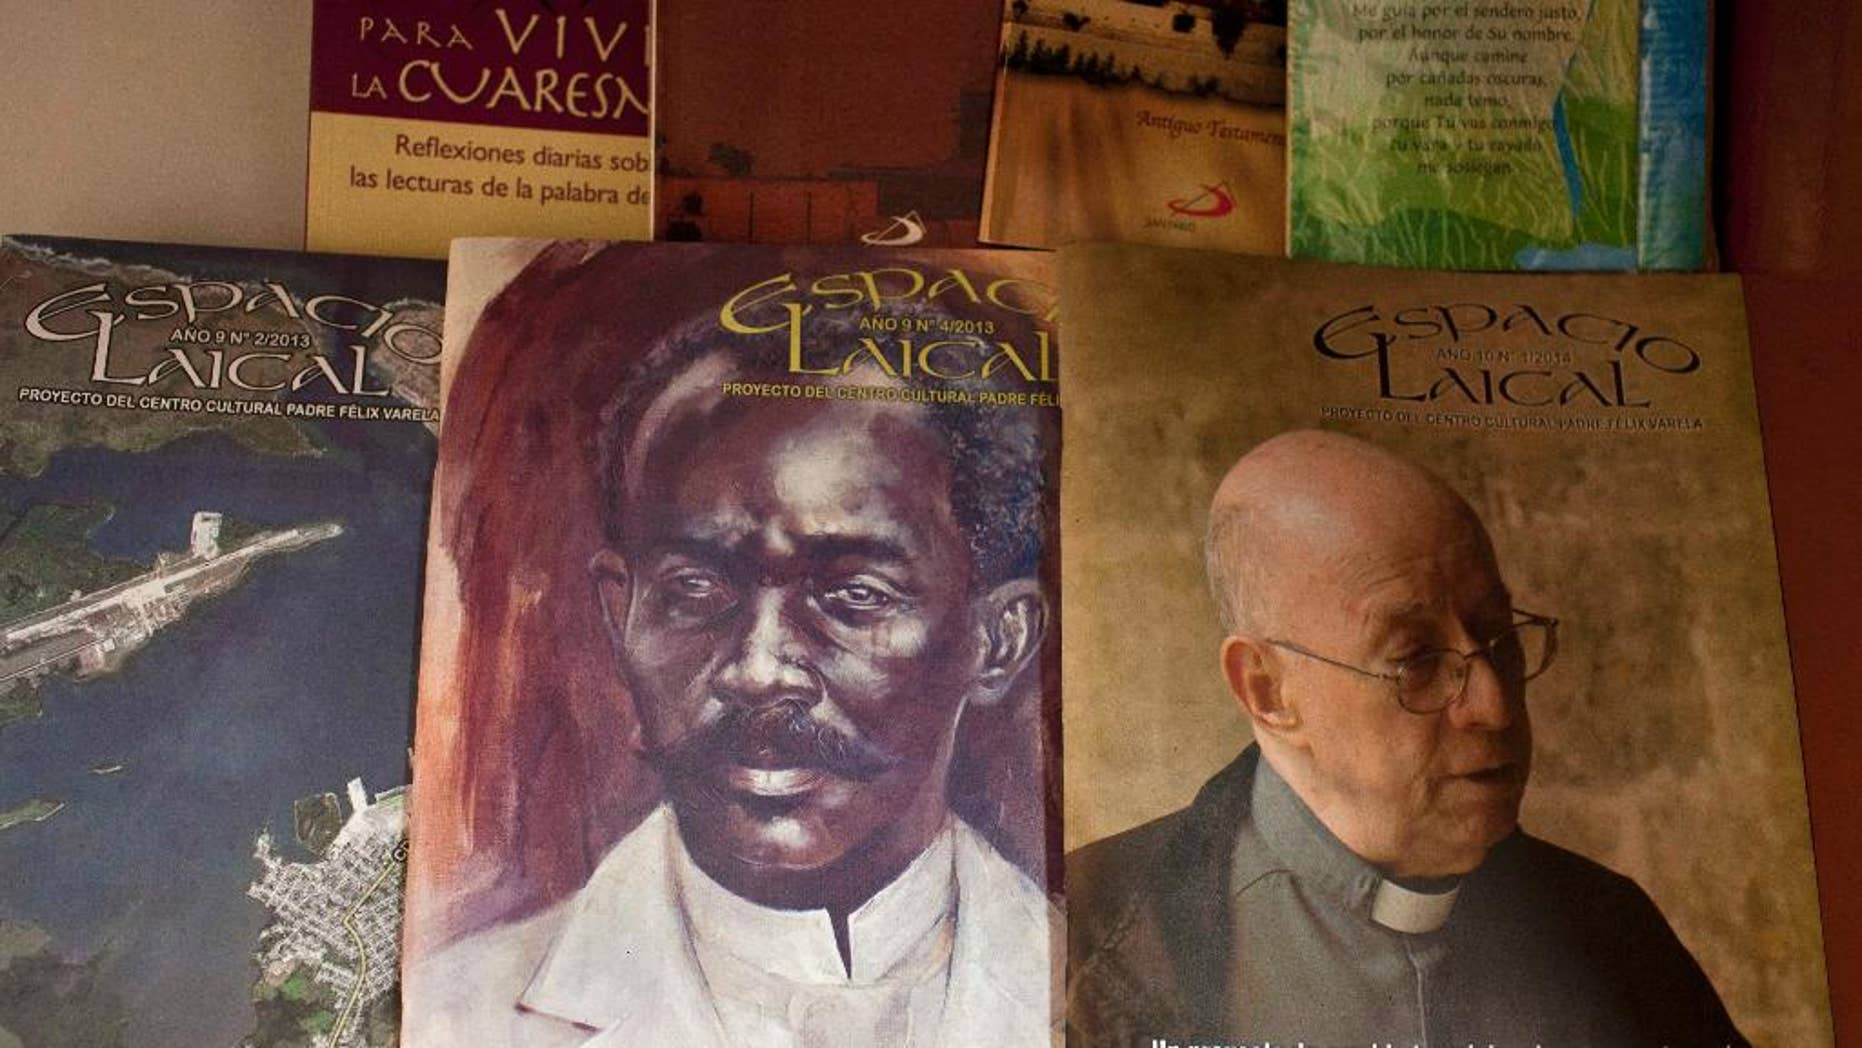 This June 25, 2014, photo, shows issues of the Roman Catholic magazine Espacio Laical exhibited for sale in a small shop in Old Havana, Cuba. The editors of the magazine, Roberto Veiga and Lenier Gonzalez resigned in early May, later confirming they quit because the magazine's content was controversial in the ecclesiastical community. The magazine's director, Gustavo Andujar, said the editors left voluntarily. (AP Photo/Franklin Reyes)